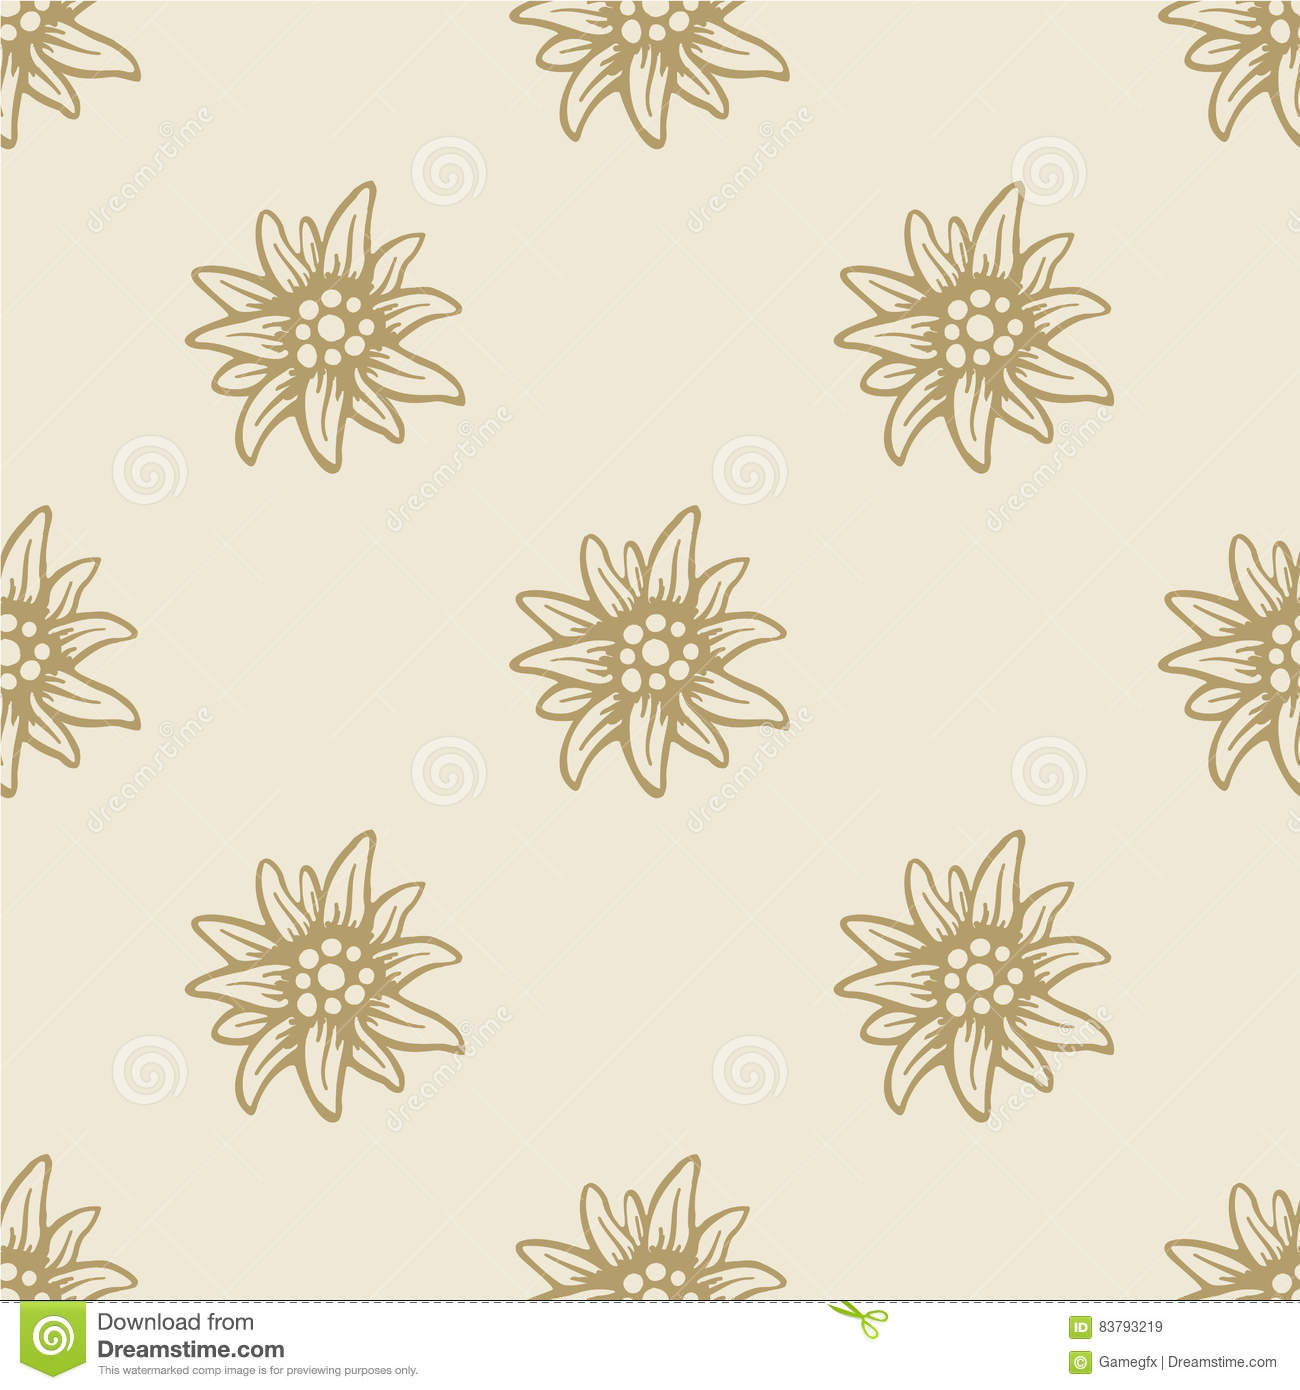 Edelweiss Flower Seamless Pattern Background Texture Stock